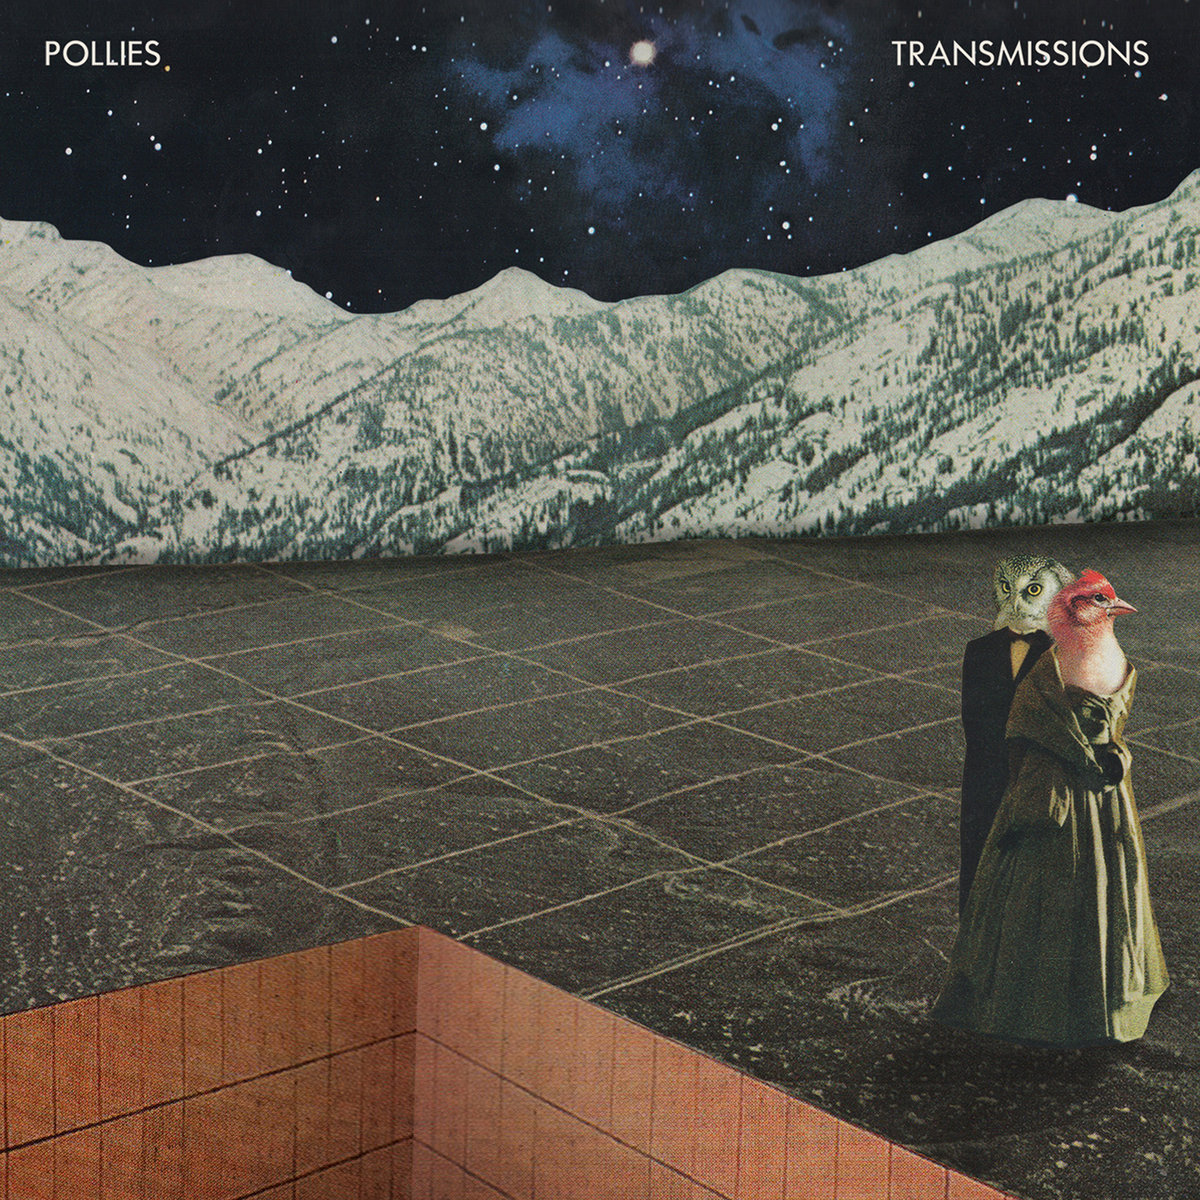 The Pollies